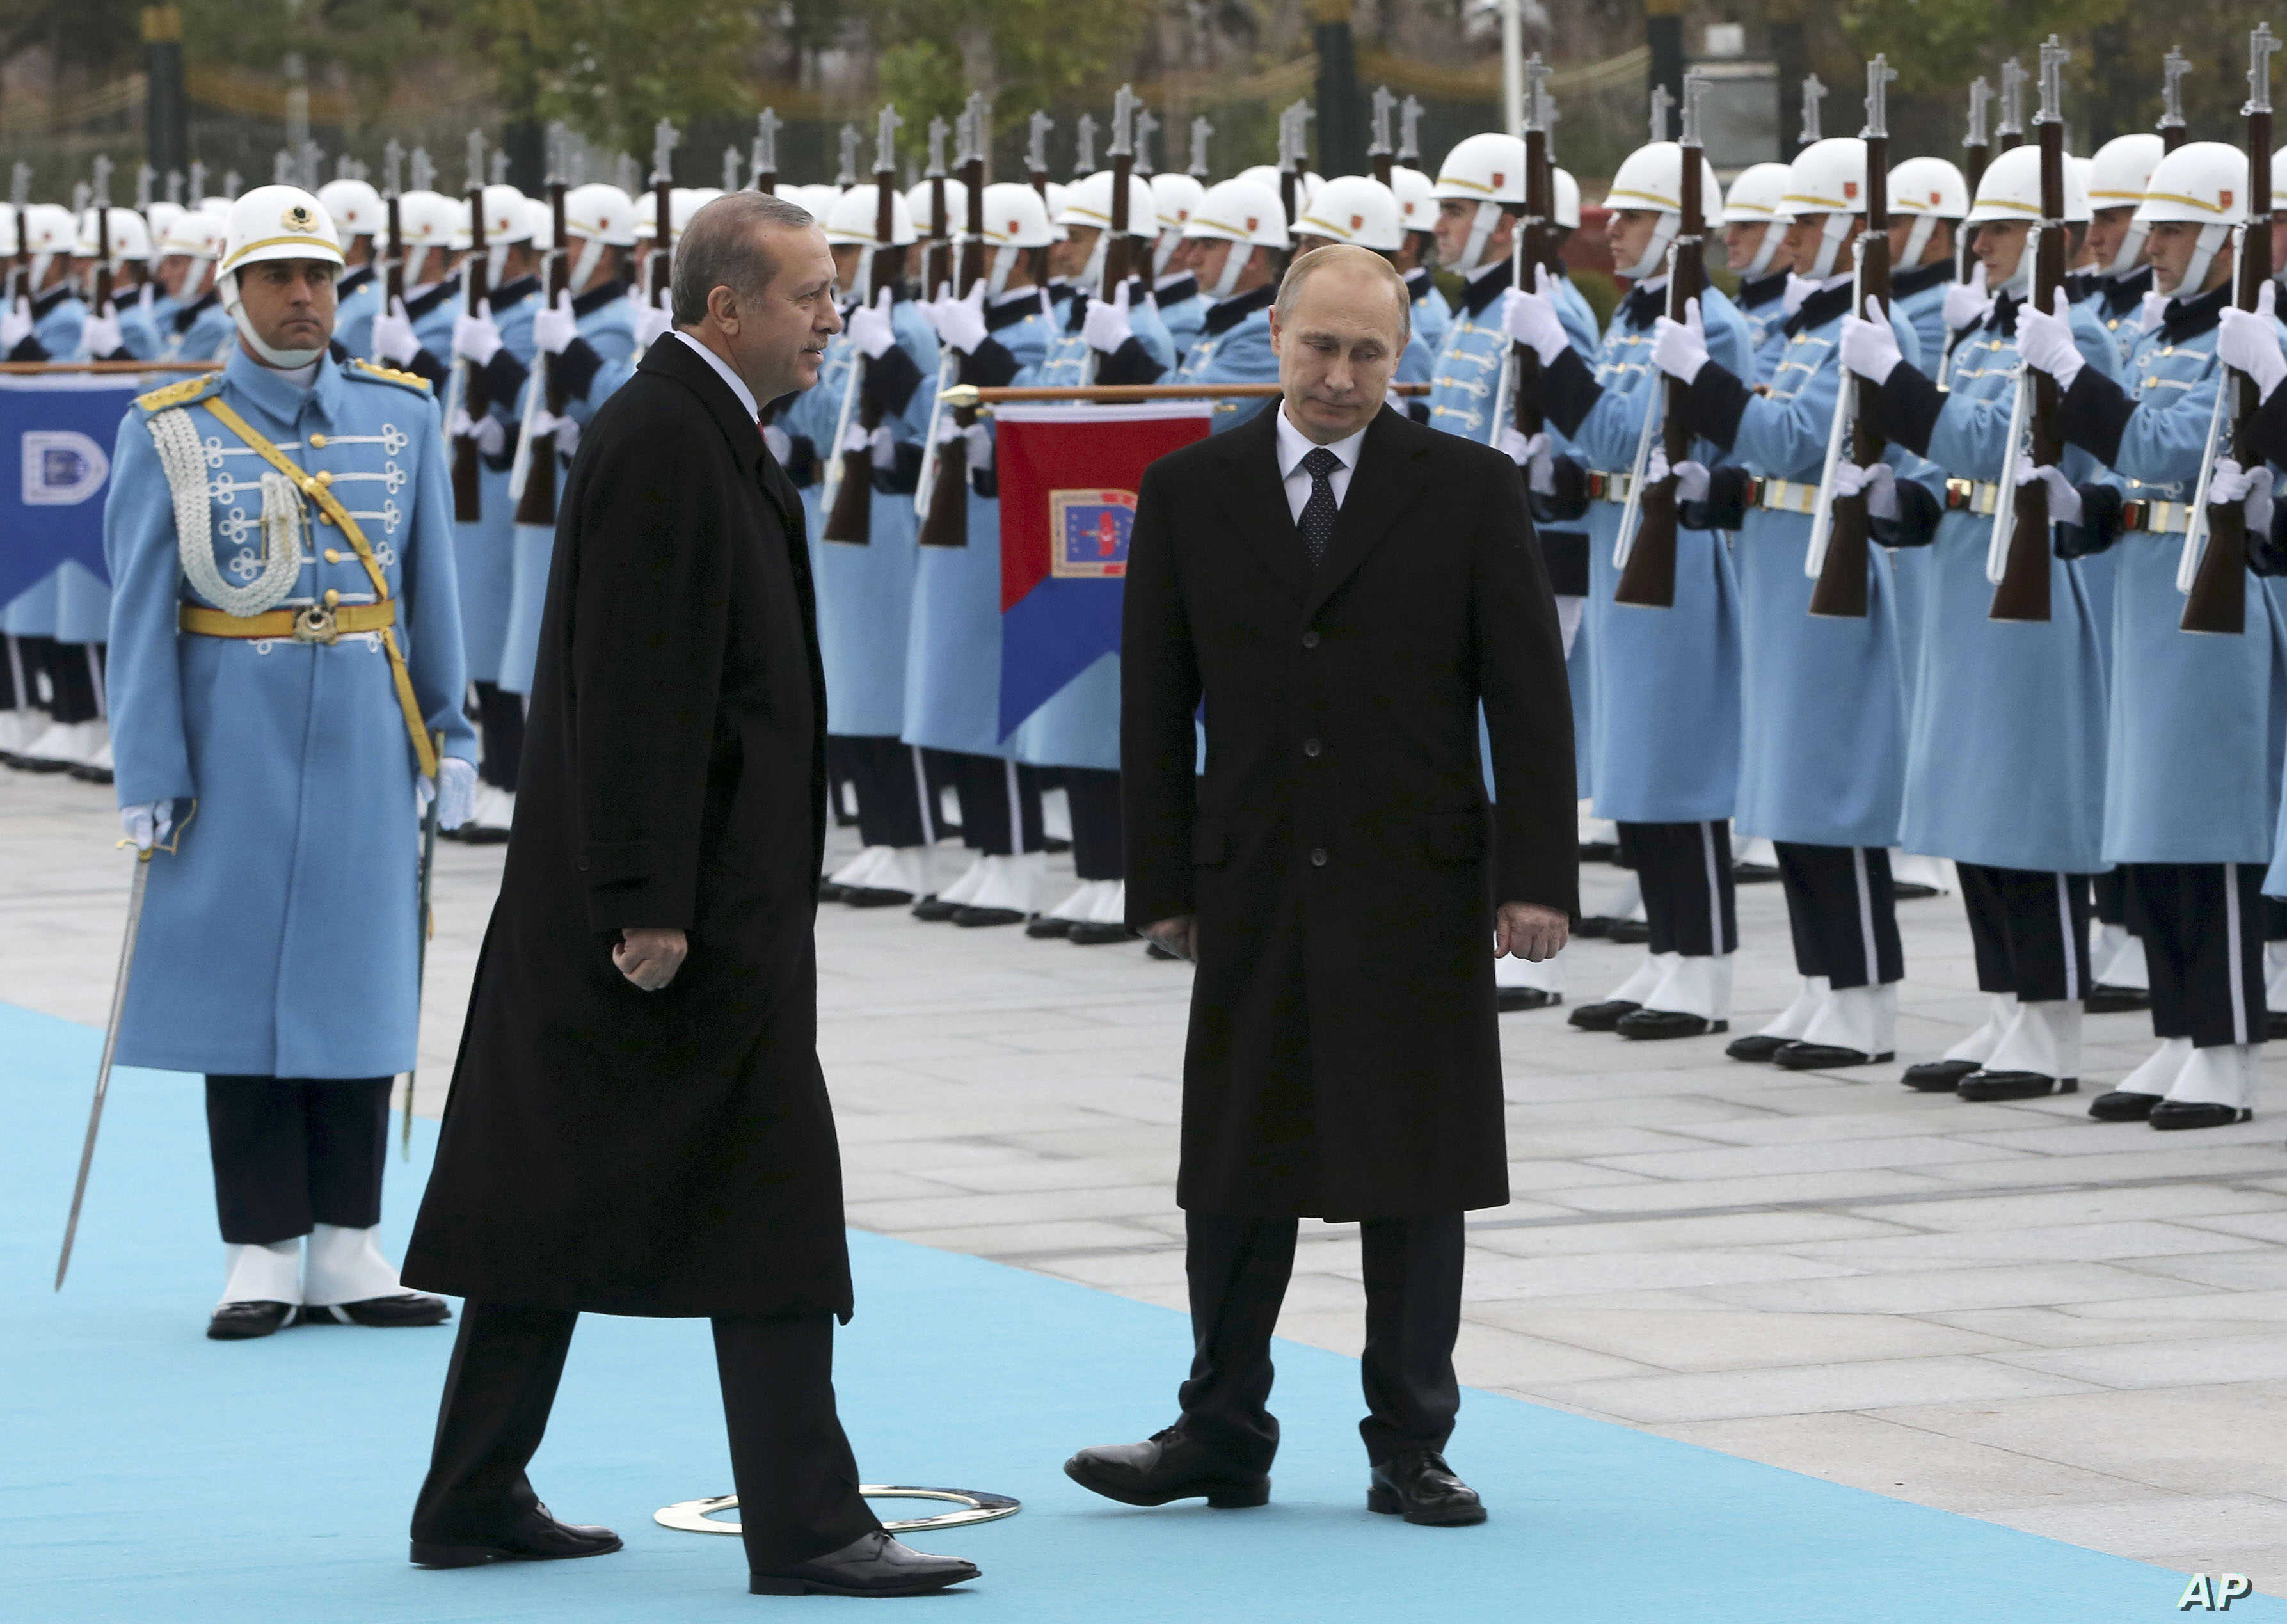 FILE - Russian President Vladimir Putin (R) and his Turkish counterpart  Recep Tayyip Erdogan inspect military honour guard during a welcome ceremony in Ankara, Turkey, Dec. 1, 2014.